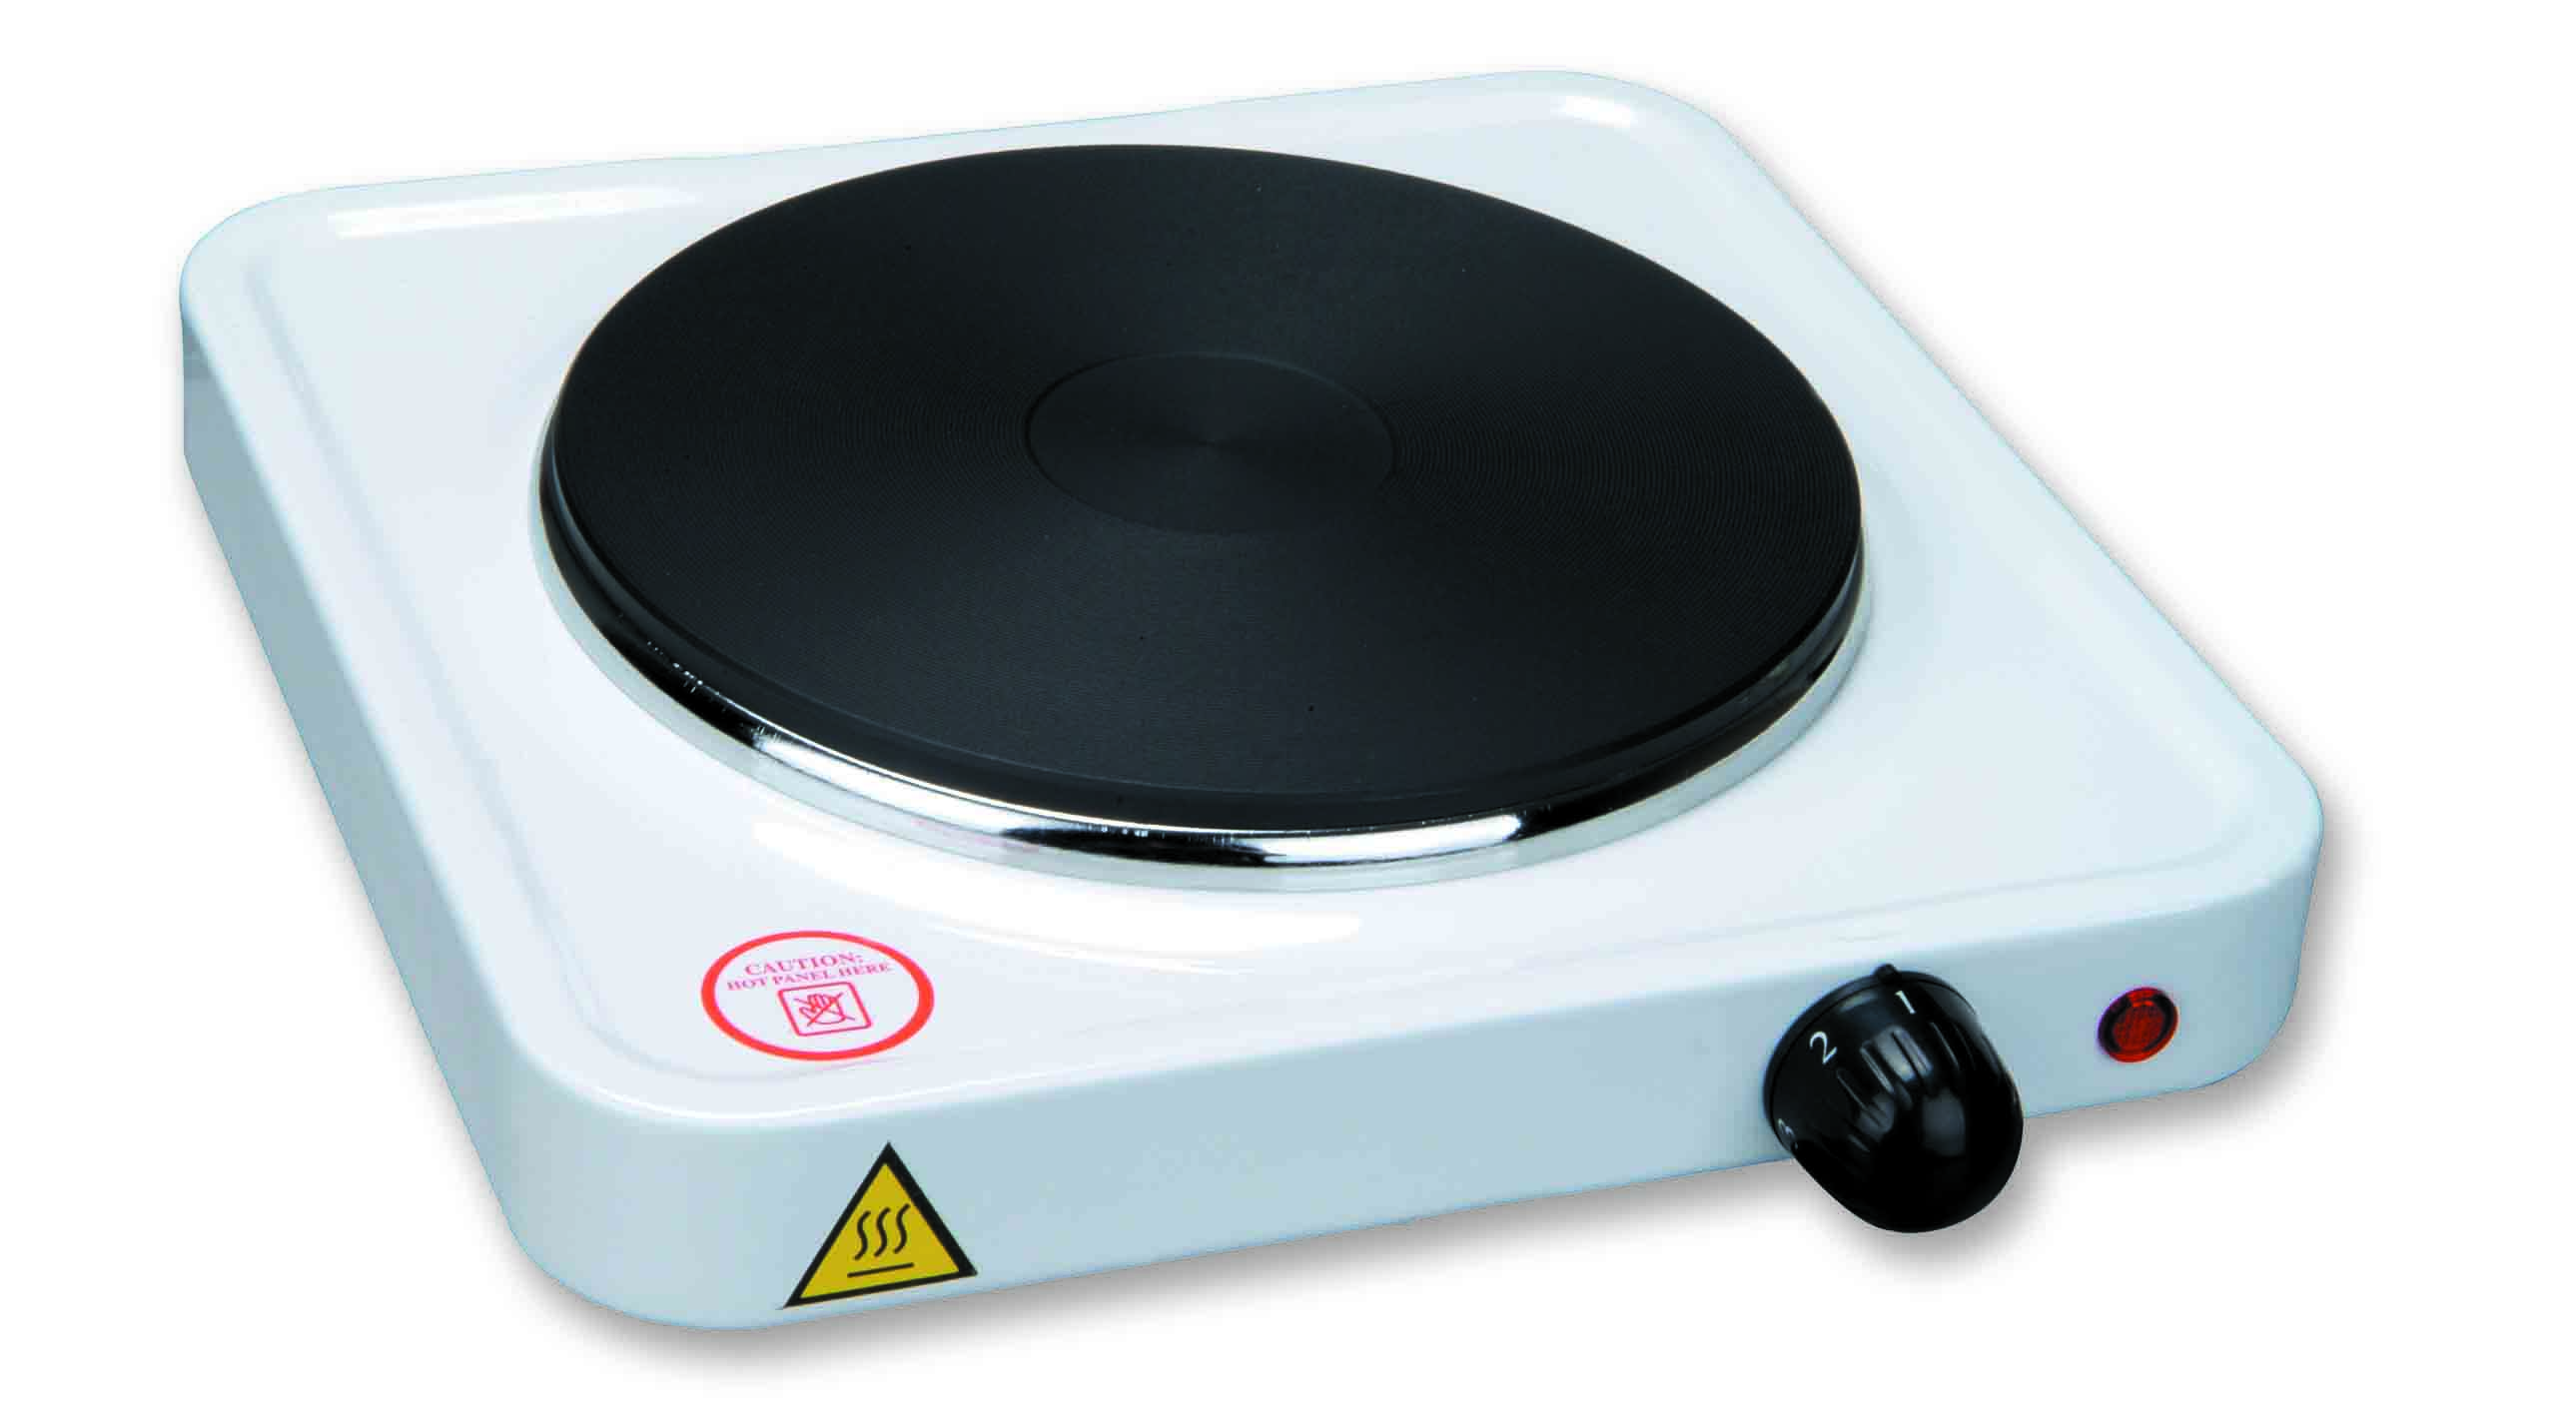 Hot Plate - HP-8010